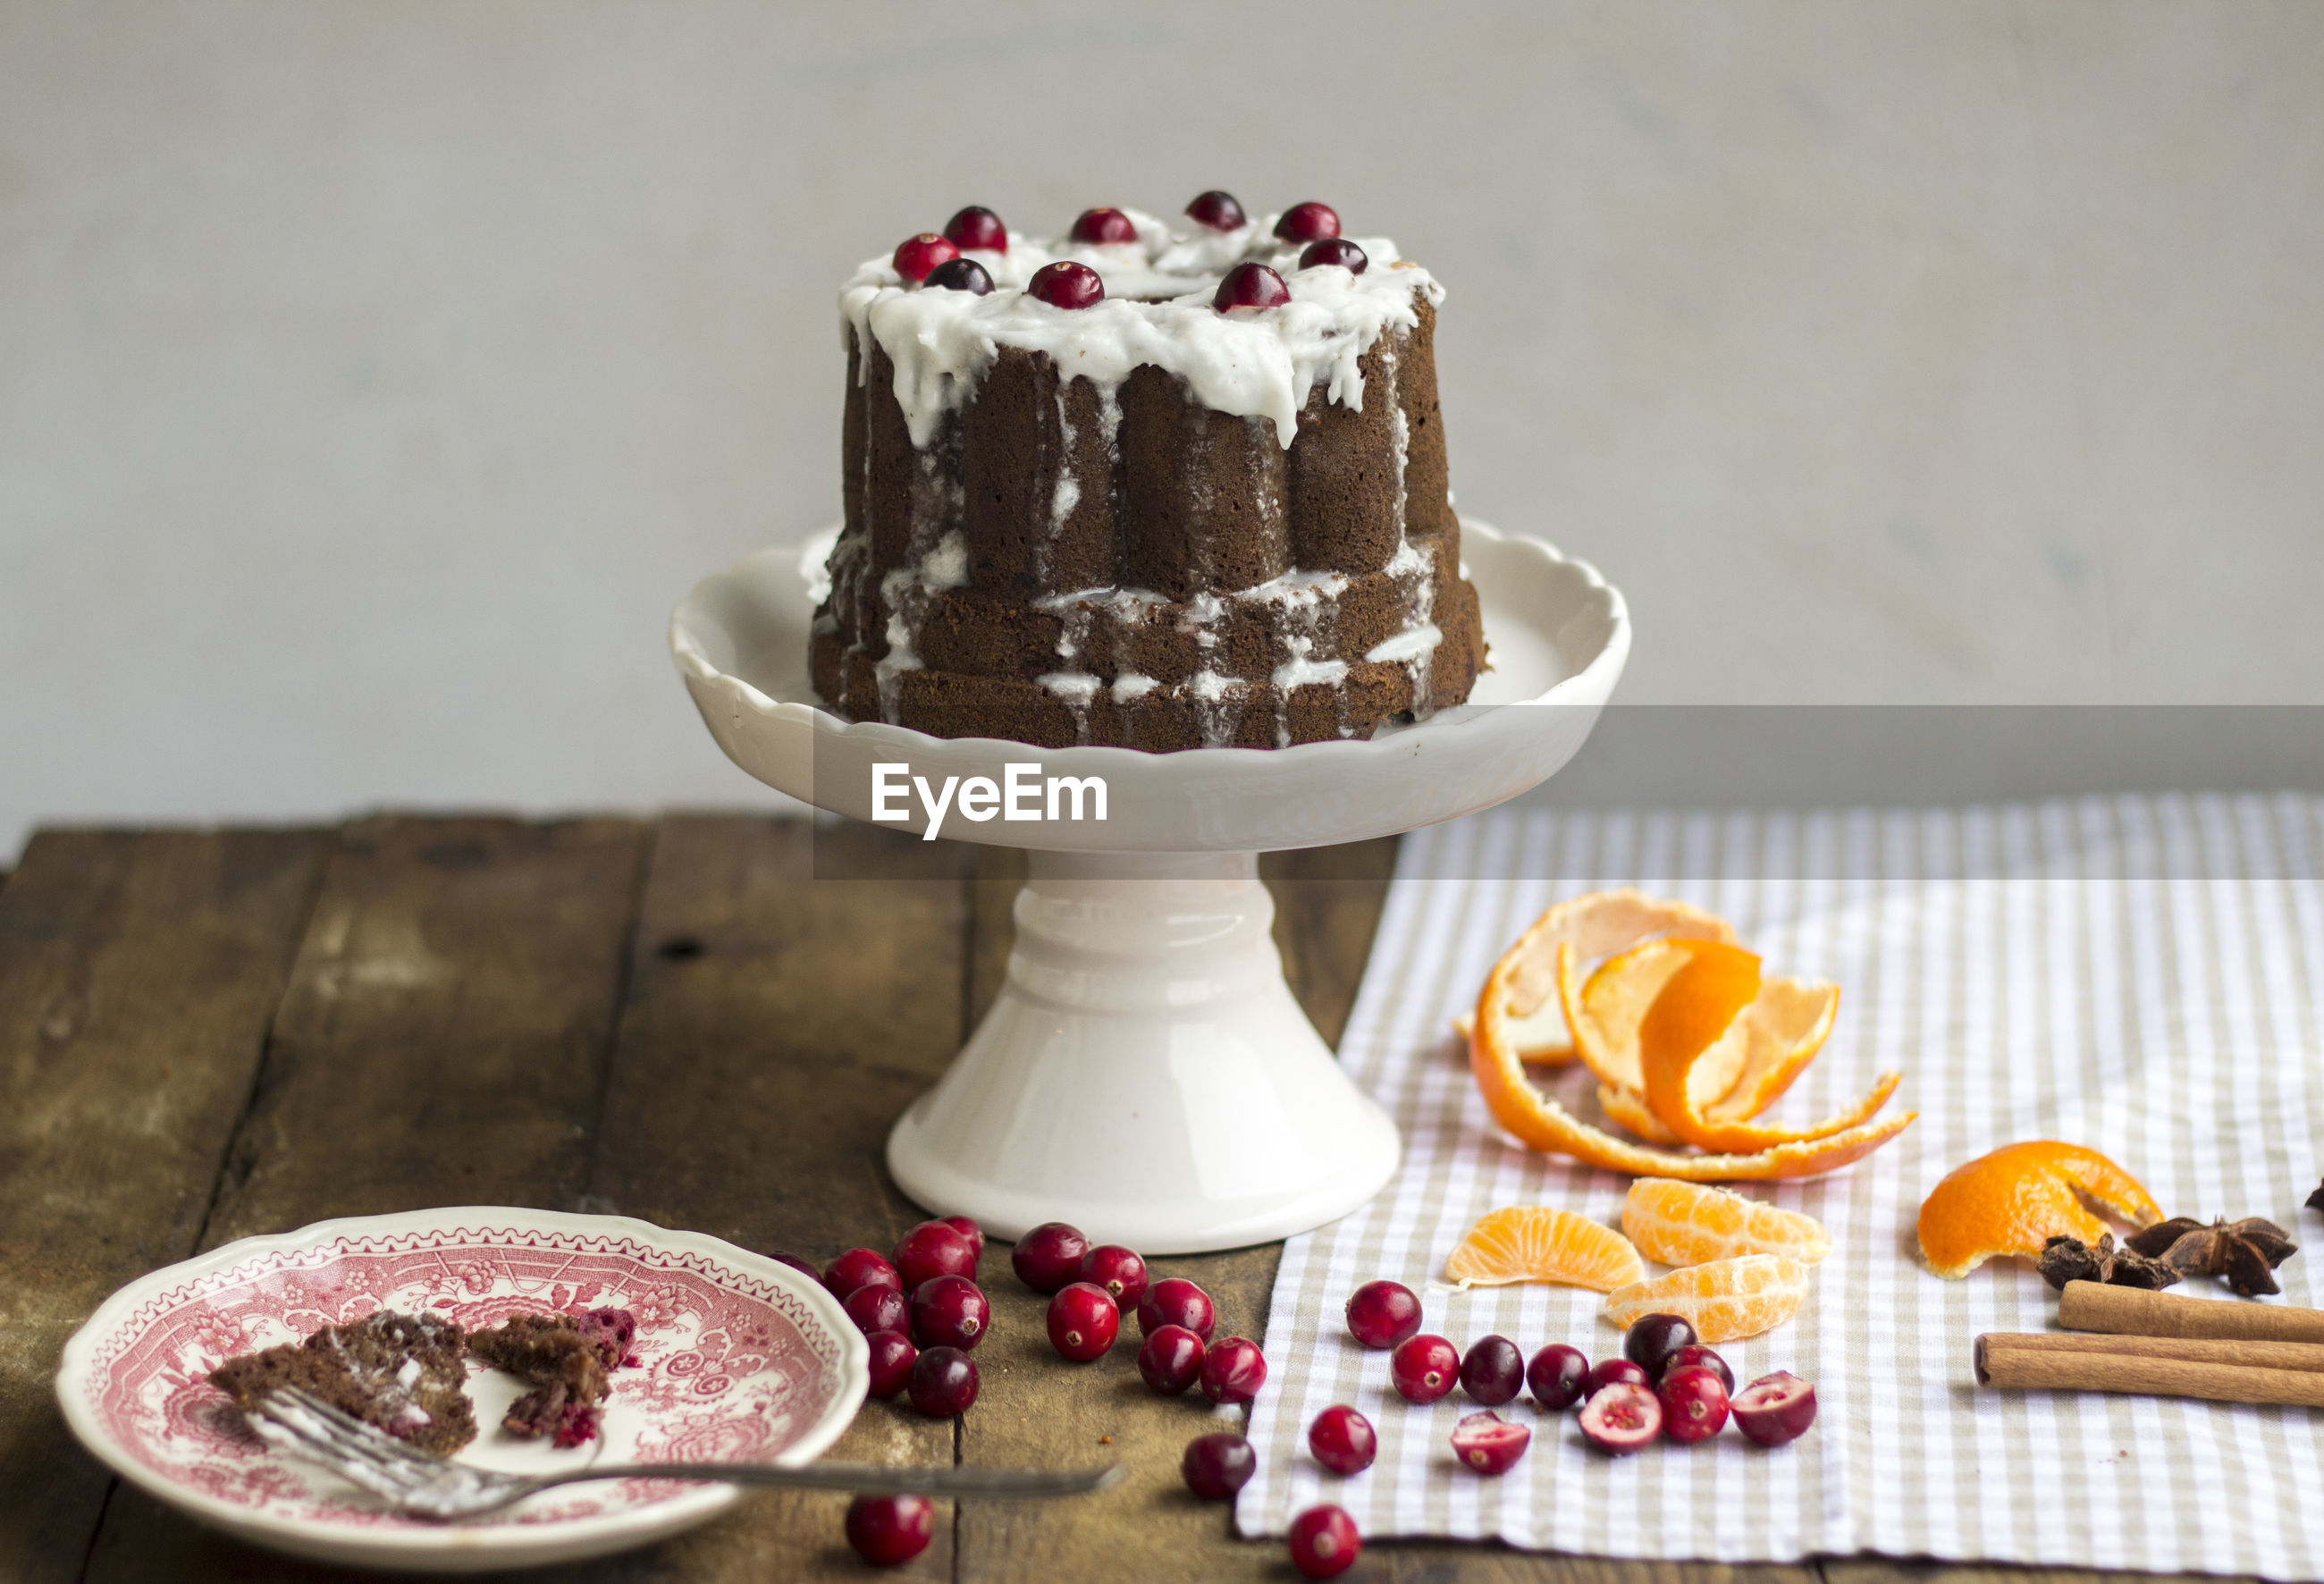 Cake with cranberries on stand over table